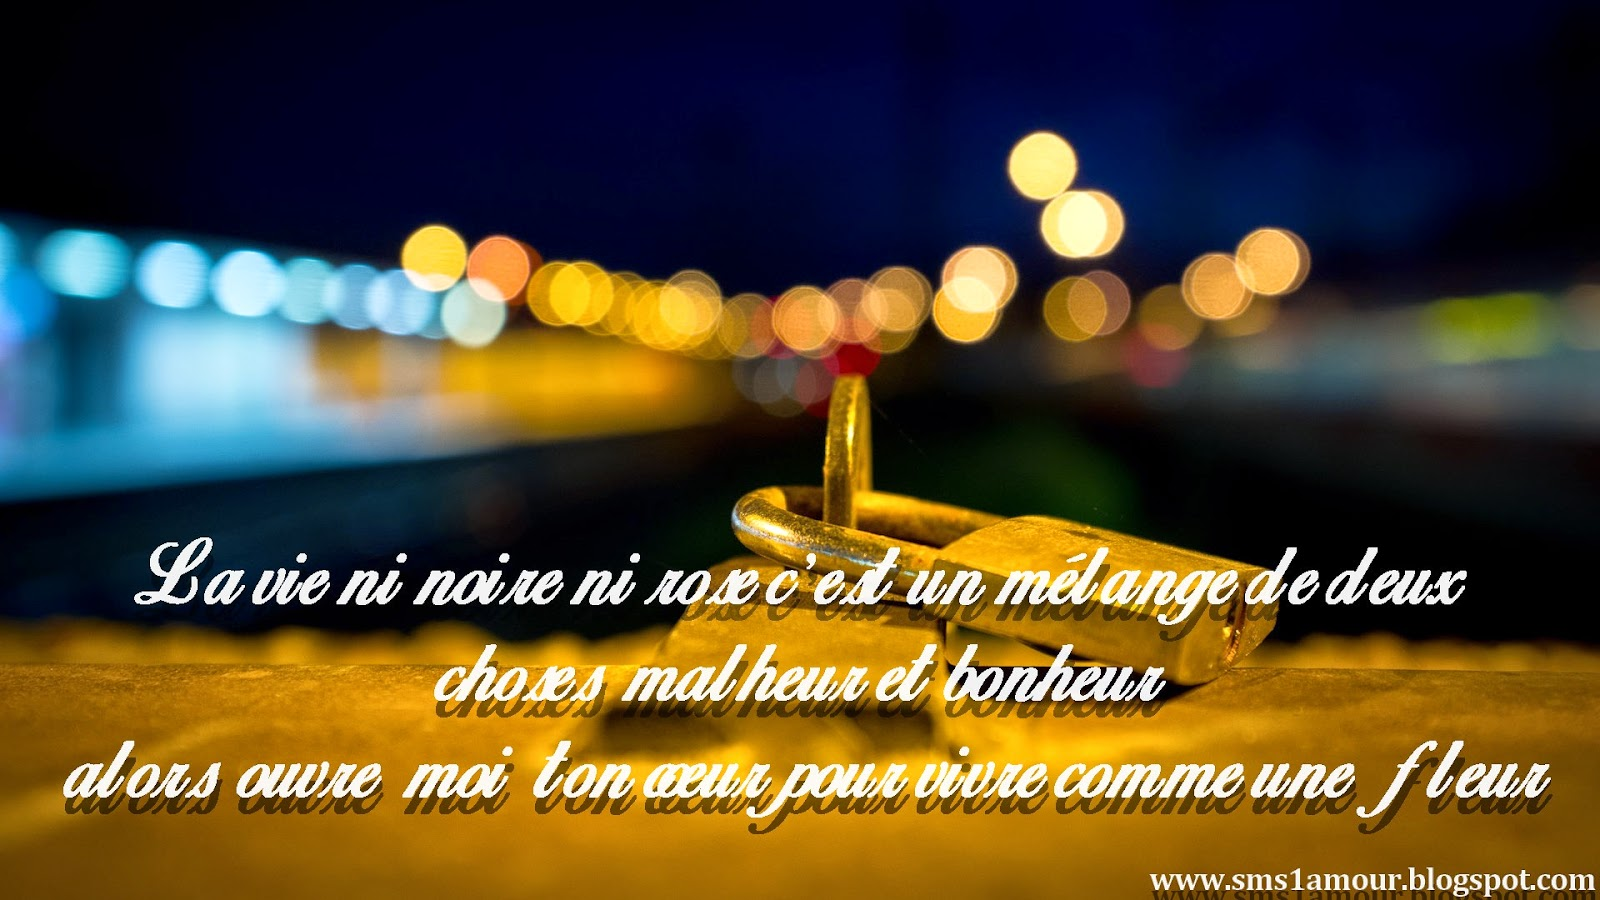 Sms Bonne Nuit Sms Et Message Damour Sms Love Sms Damour